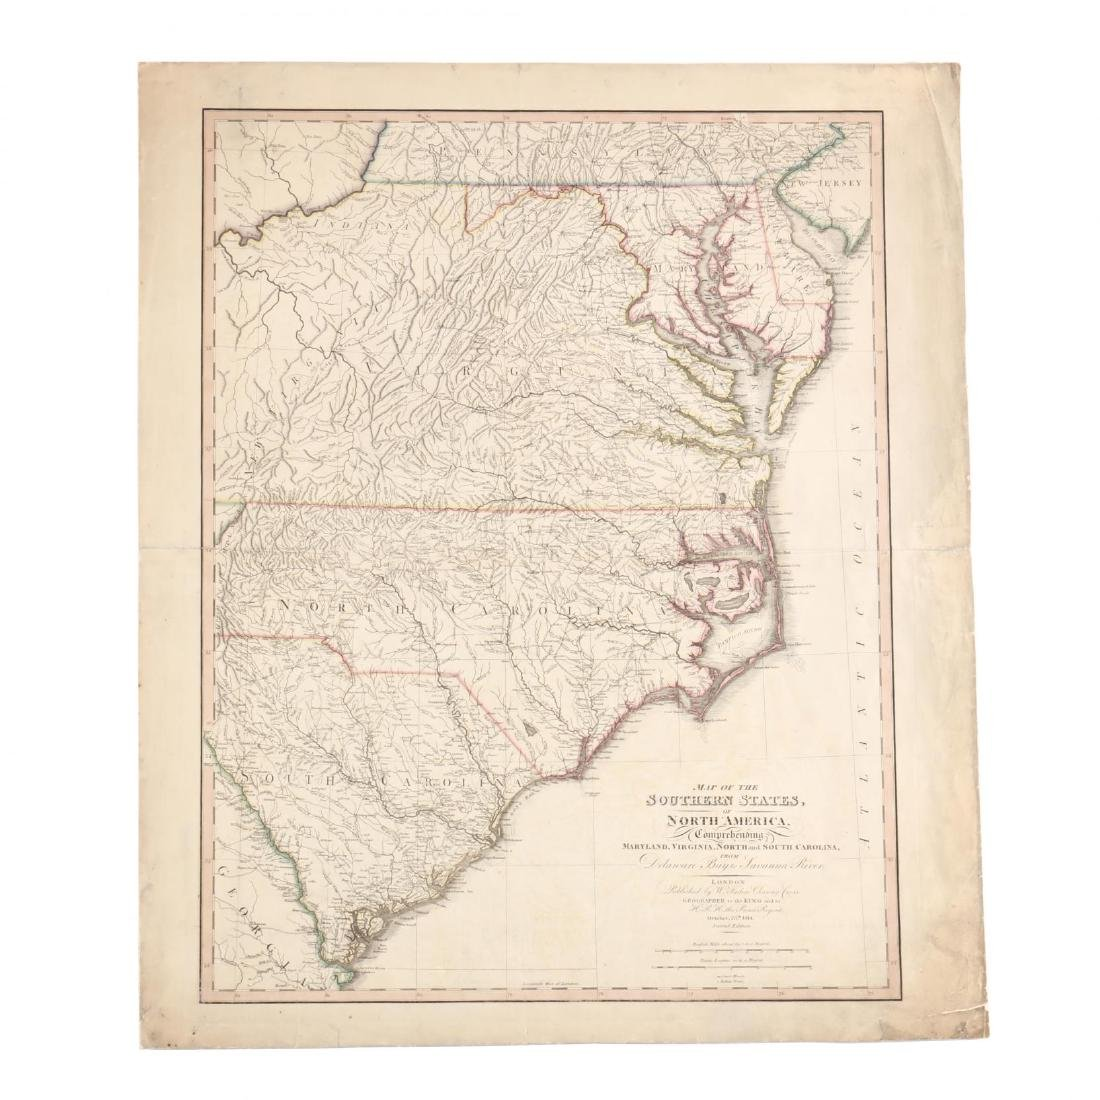 Faden, William.  Map of the Southern States, of North